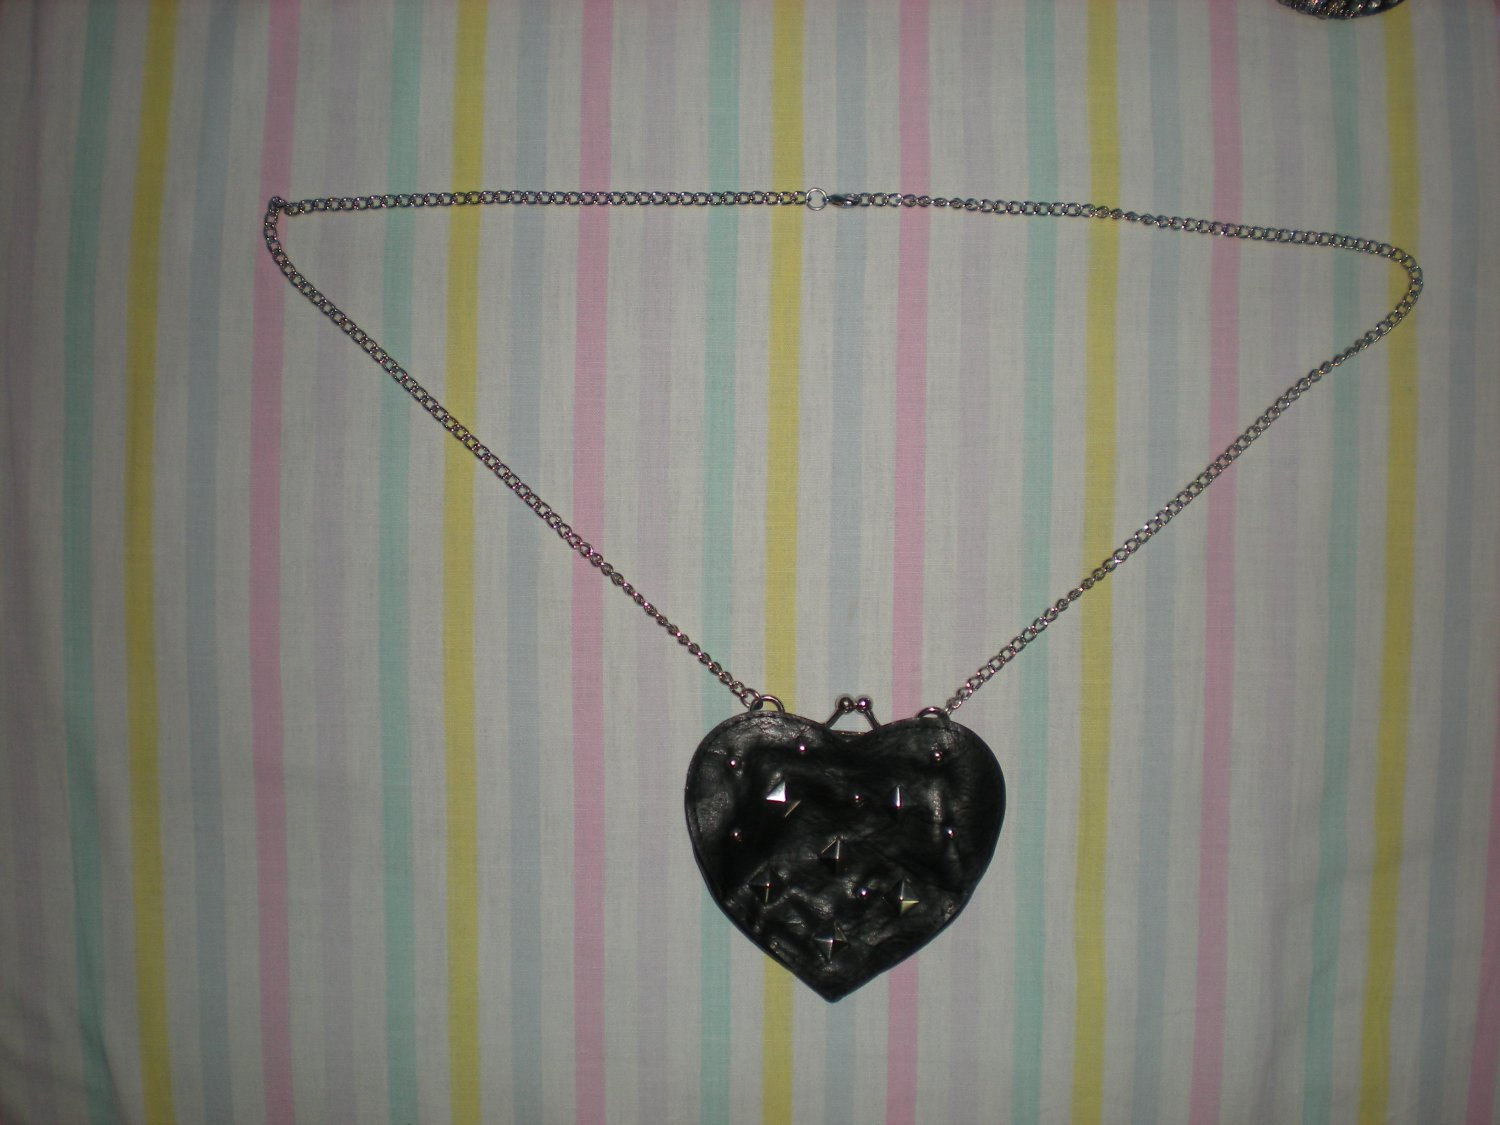 Brand New Fashion Petite Purse With Chain Lady Party Jewelry